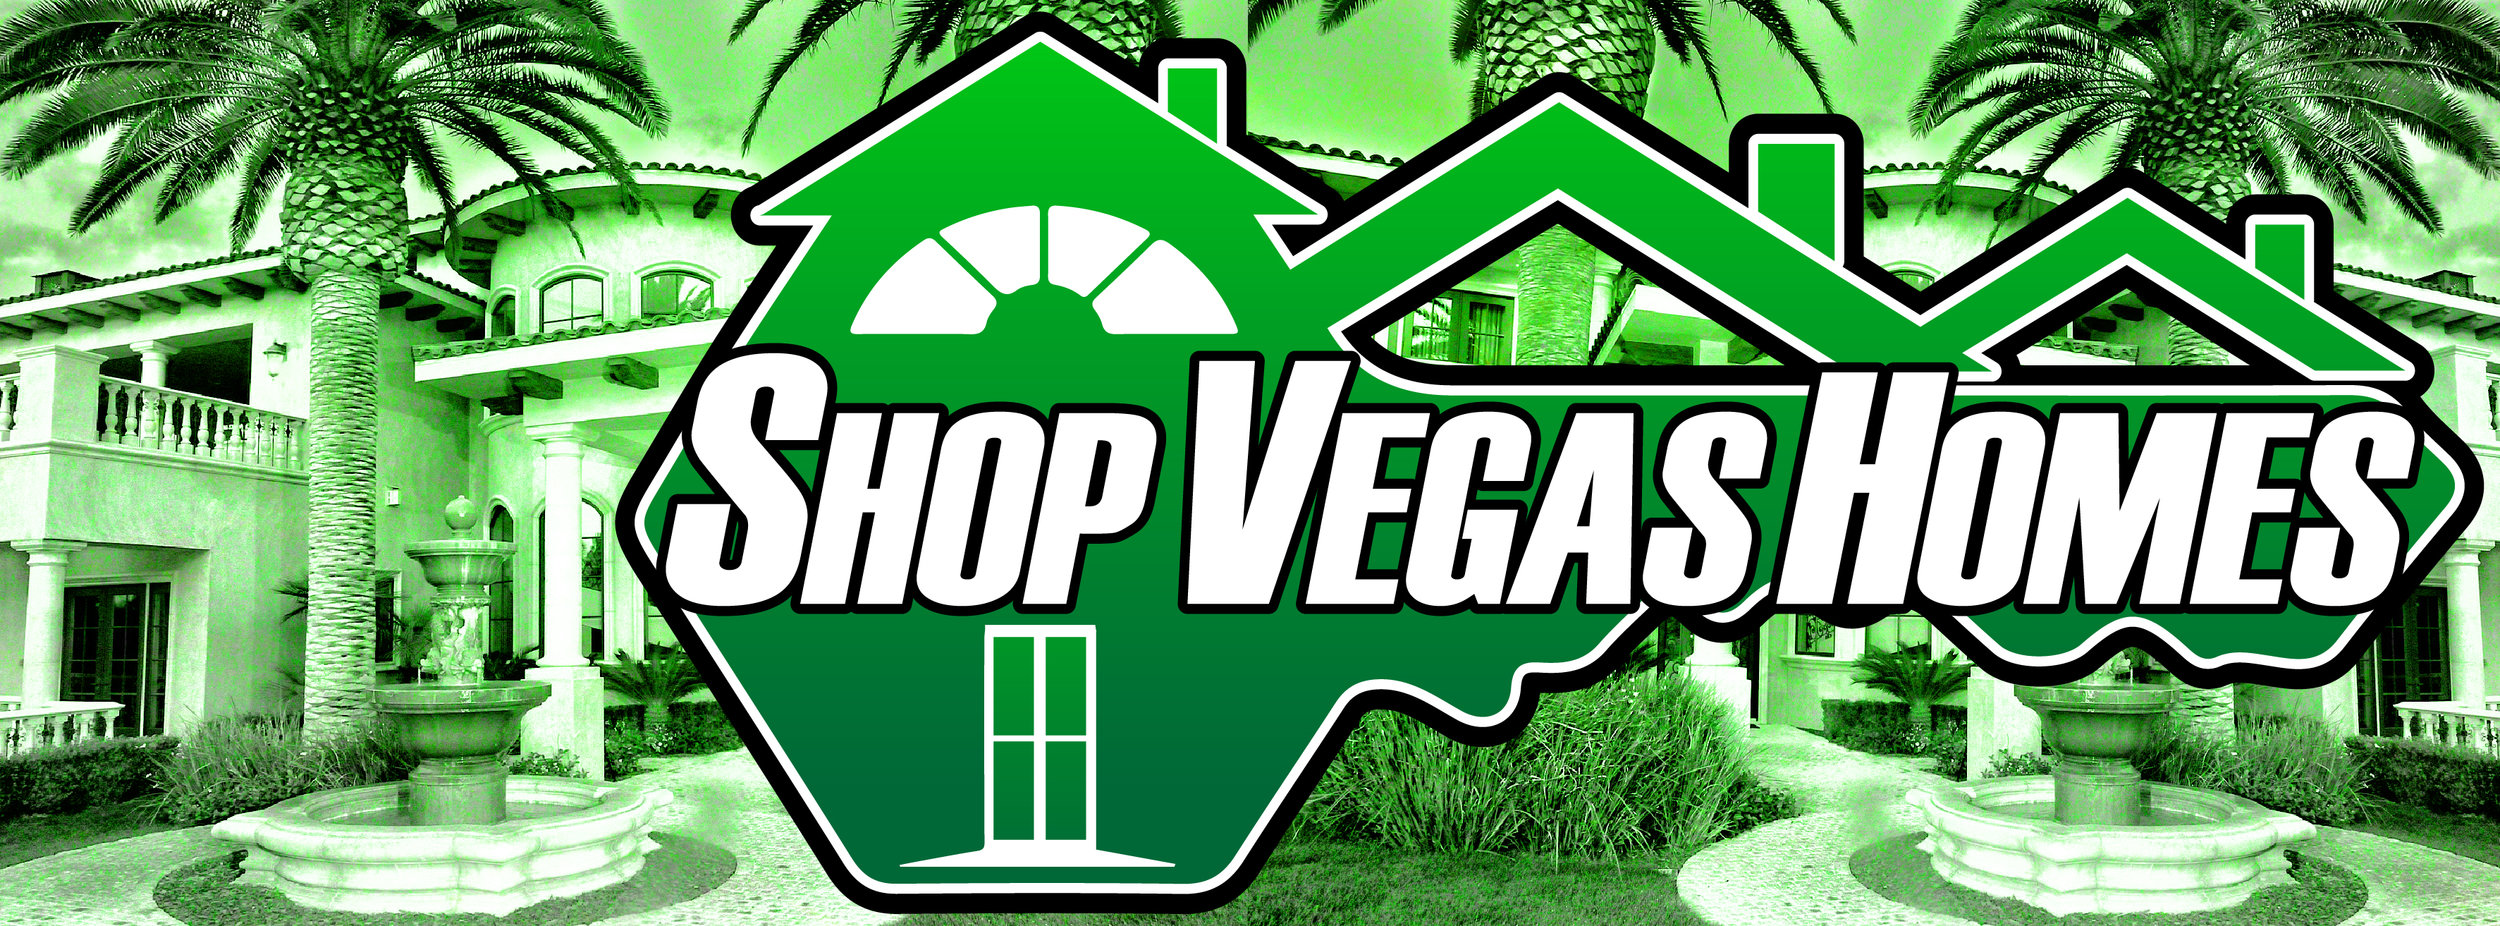 Shop Vegas Homes Logo-FaceBook panel-01.jpg